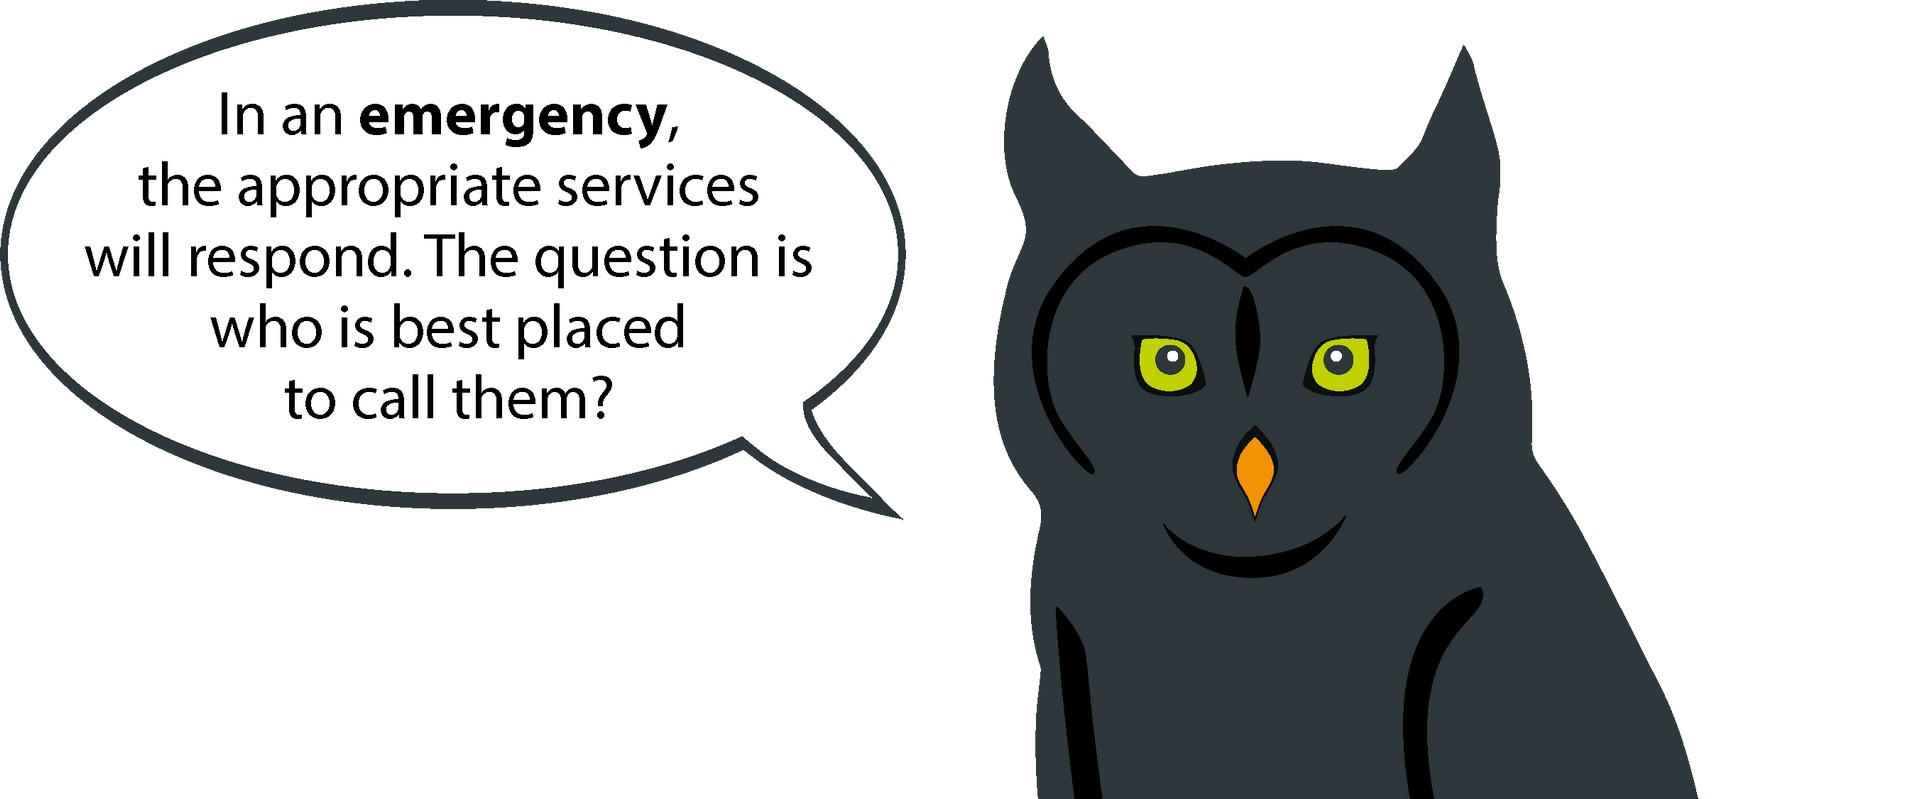 Lone worker protection - Emergency services owl facts